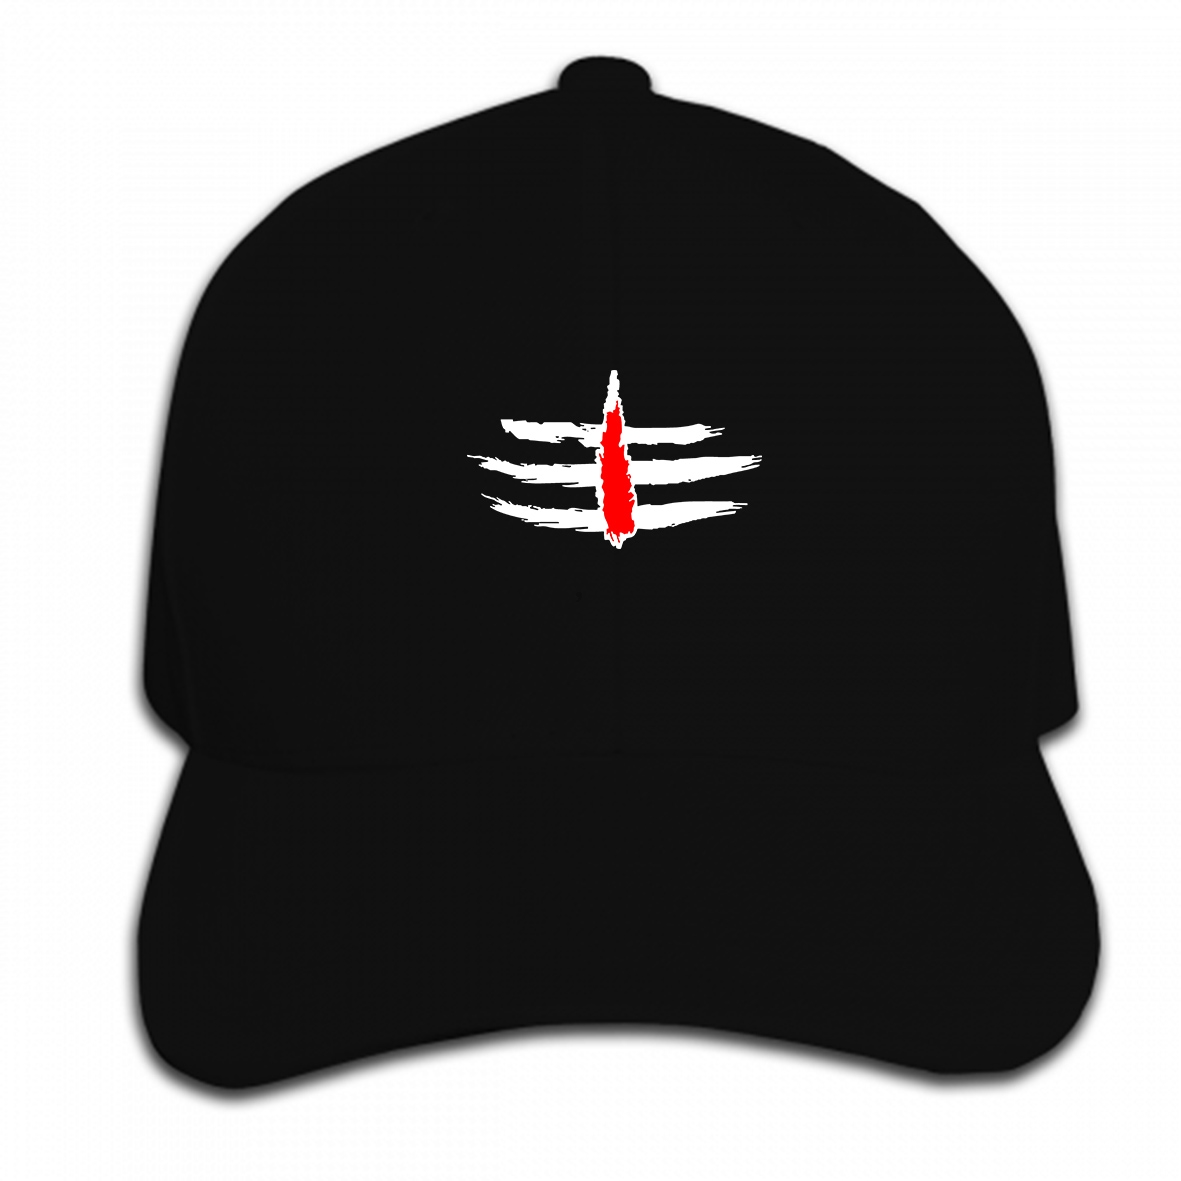 Print Custom Baseball Cap Men Black Shiv <font><b>Tilak</b></font> Brand Casual Man Top Wear Daily Male Wear Casual Hat Peaked cap image